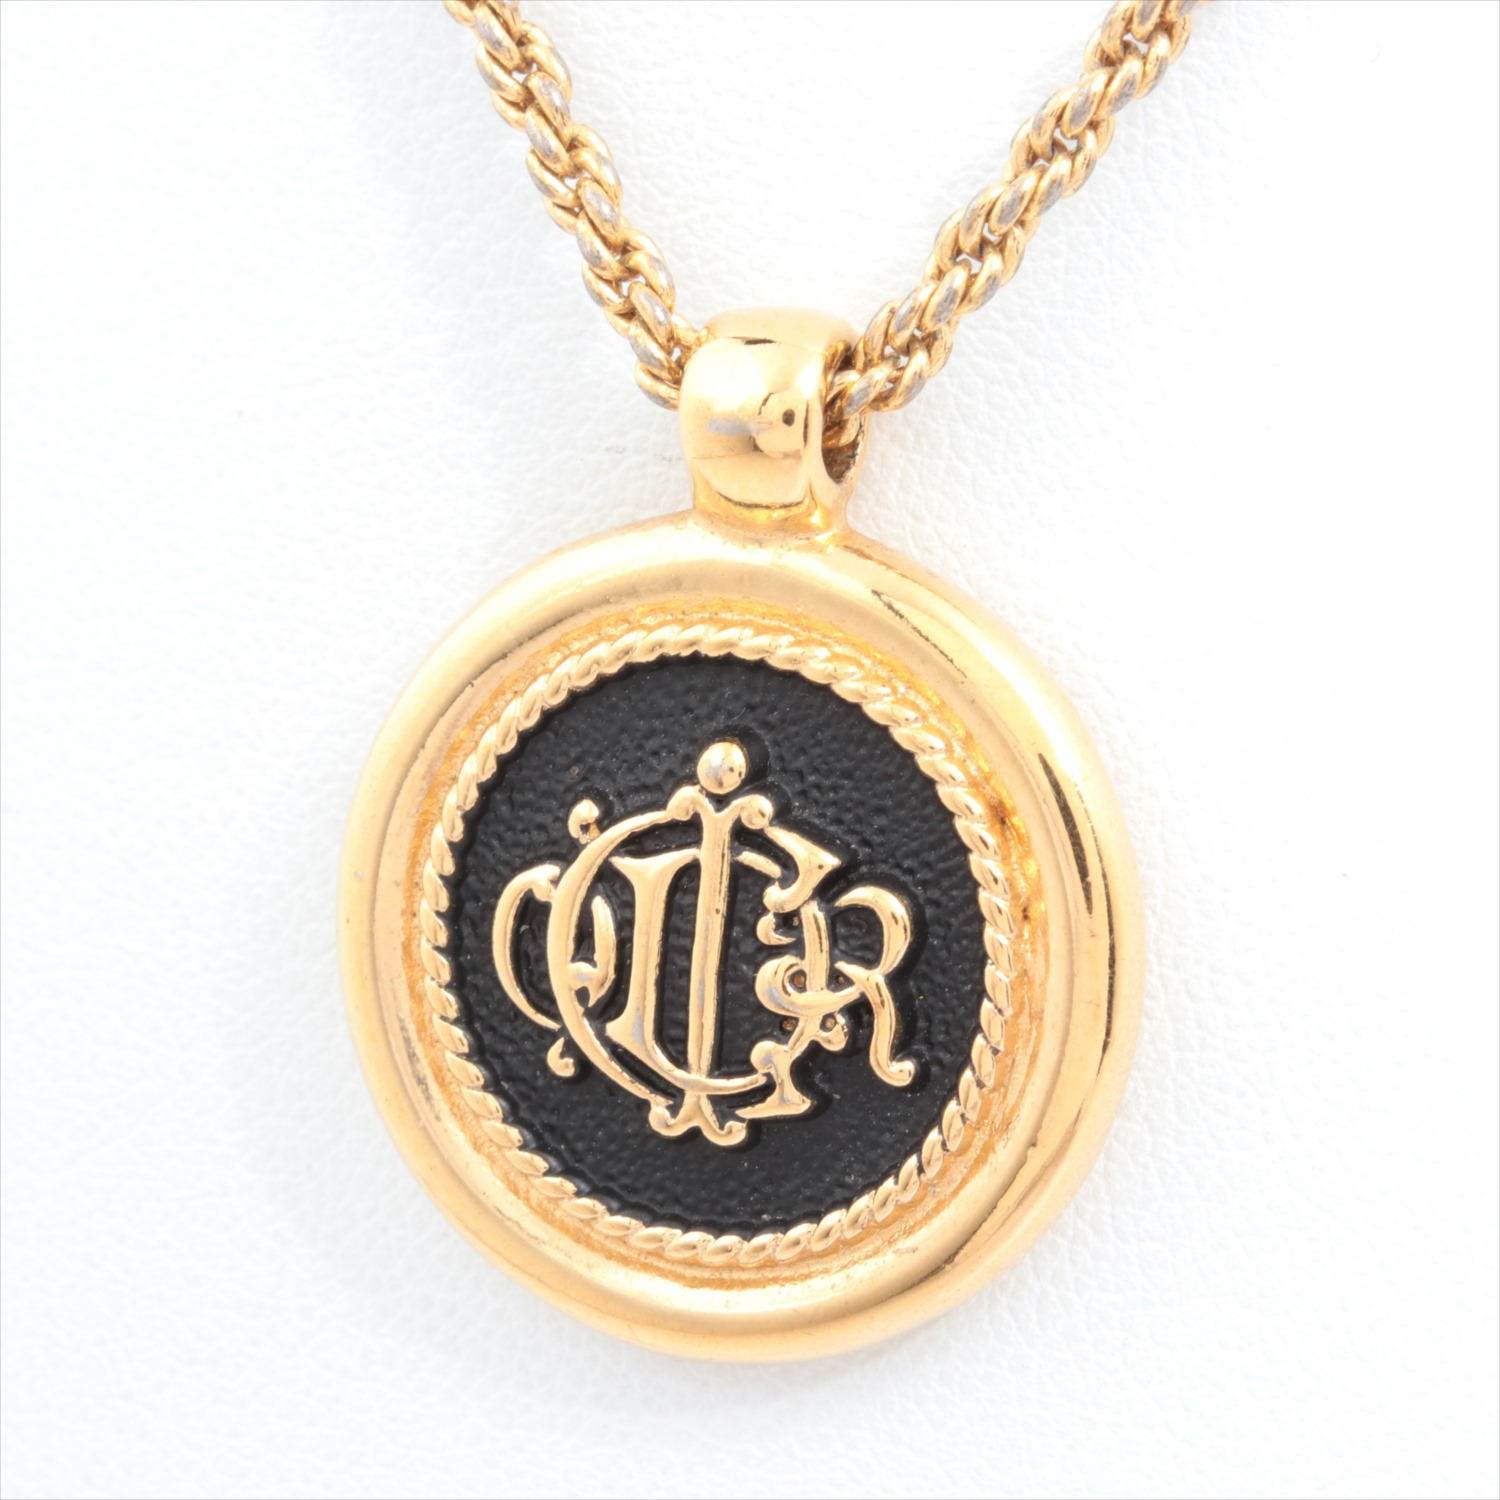 [Used article] Christian Dior necklace metal material Gold